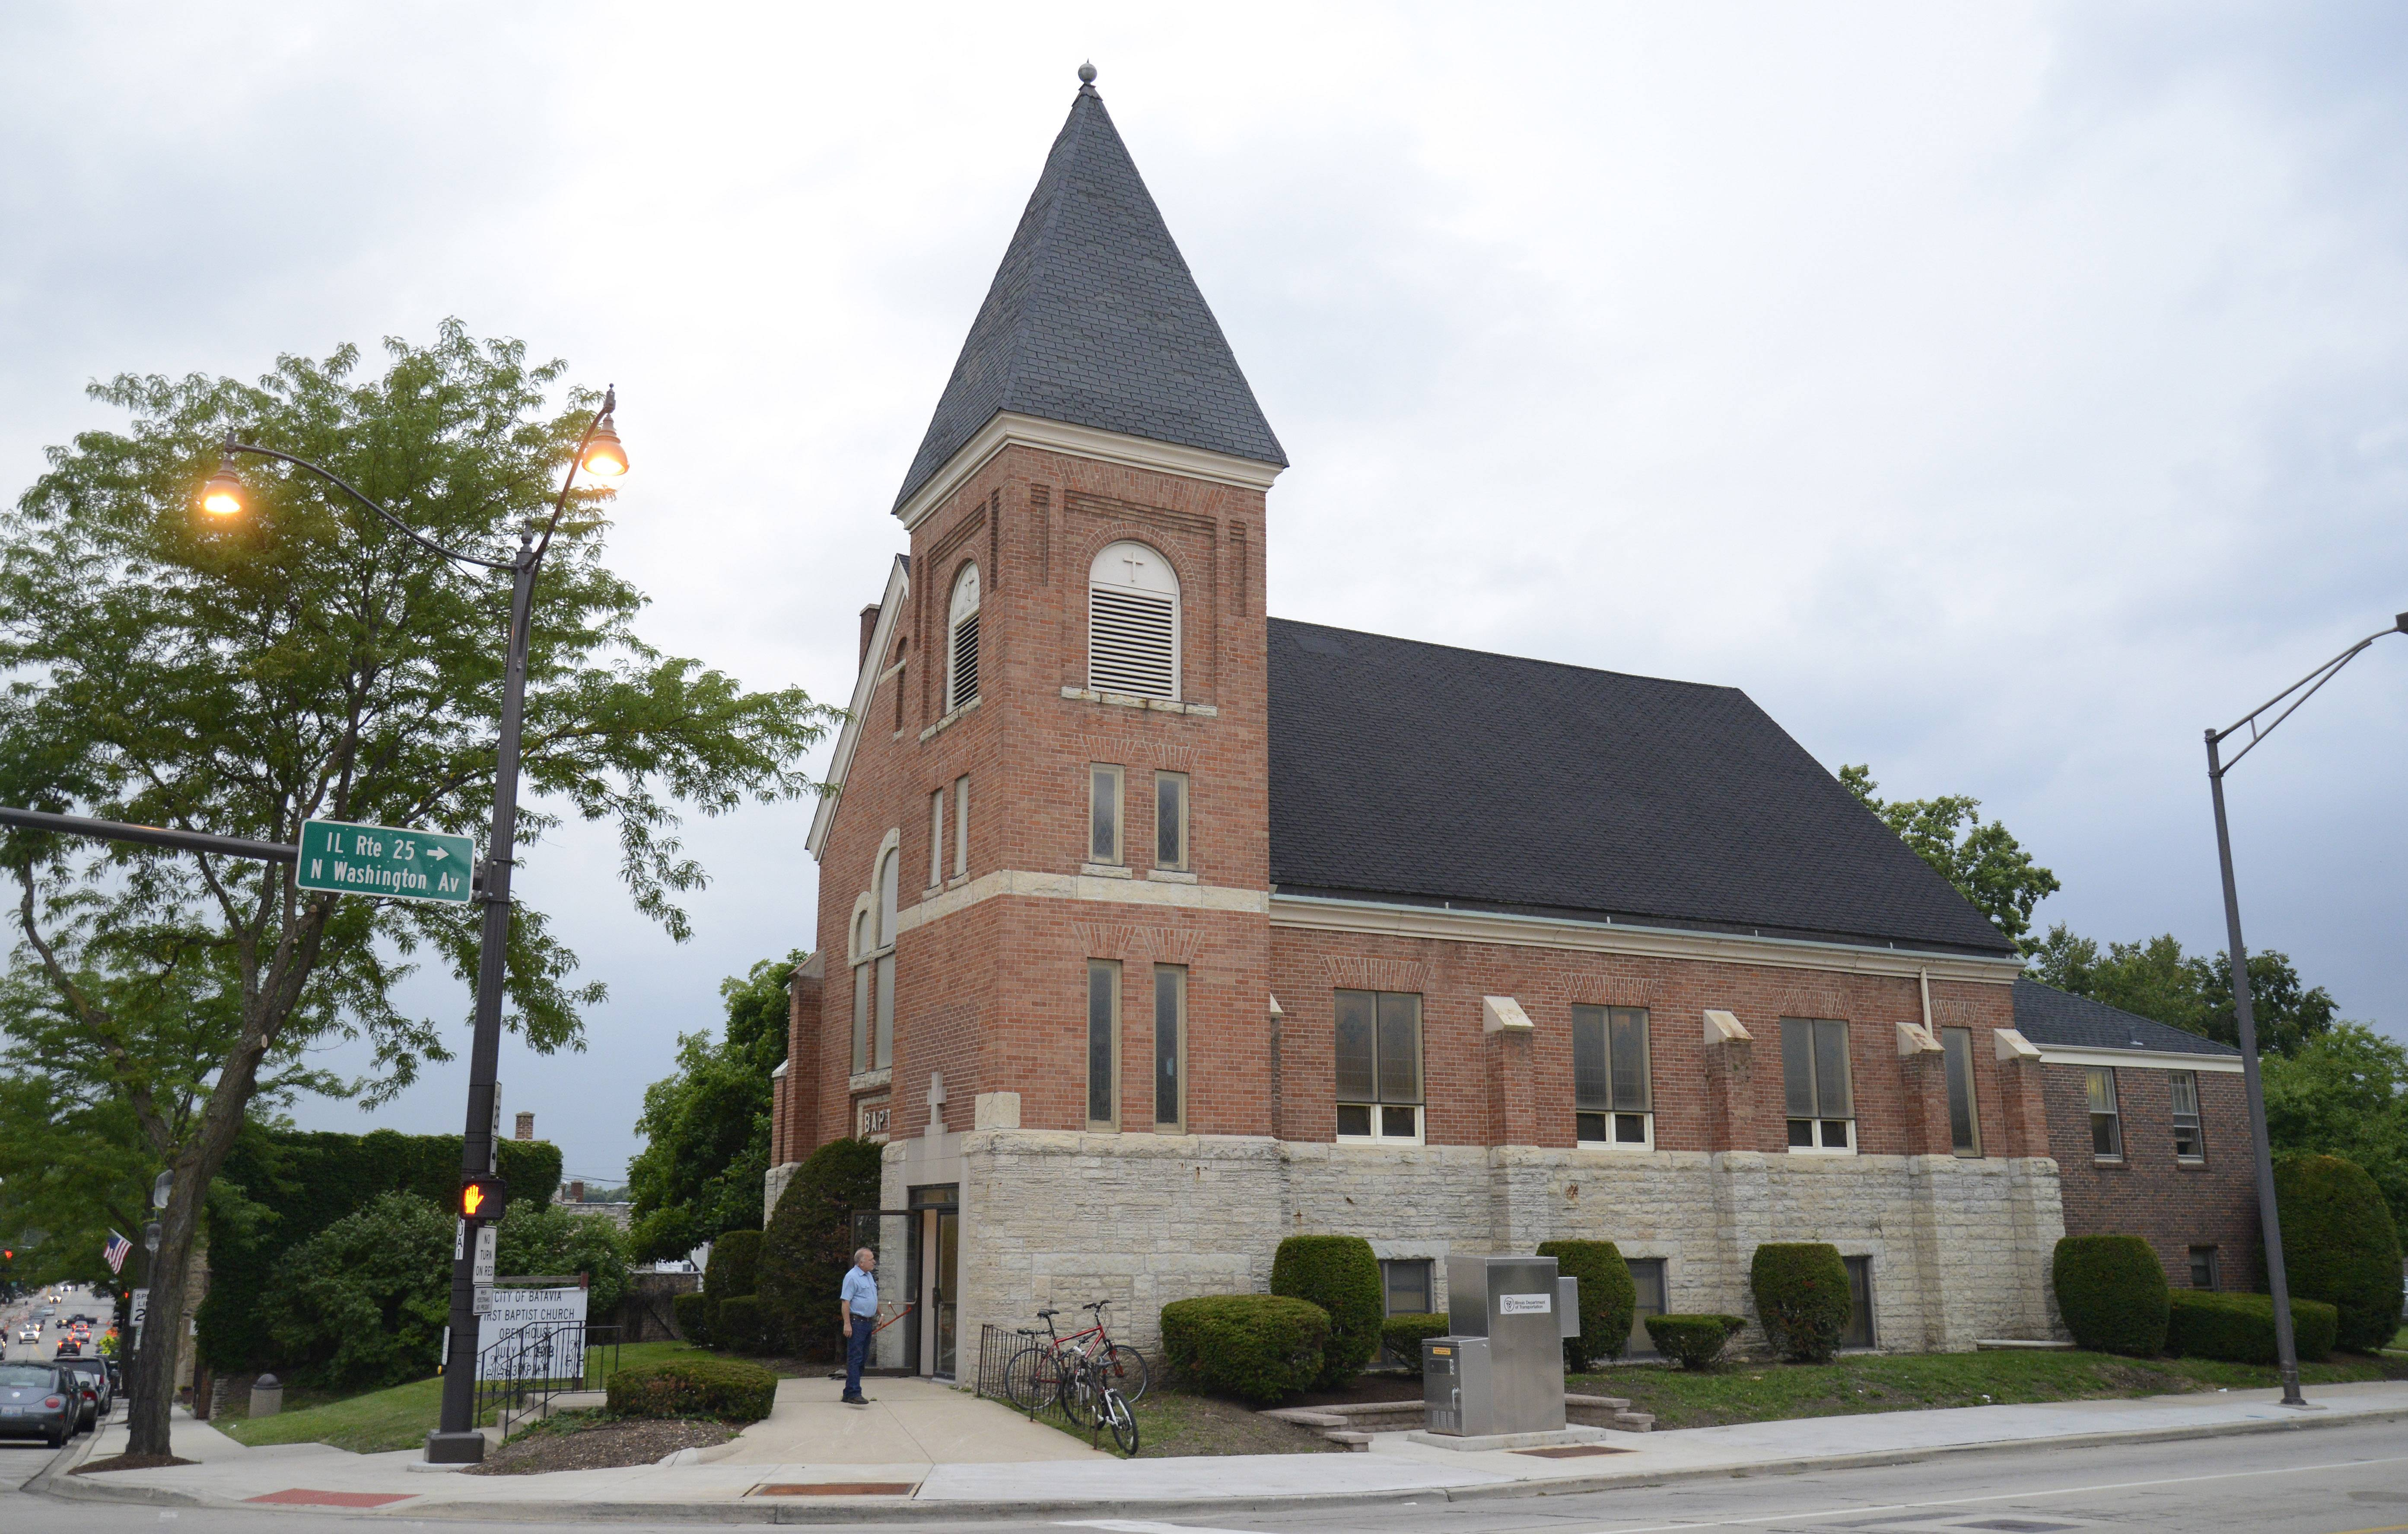 Batavia considering TIF district to redevelop church block